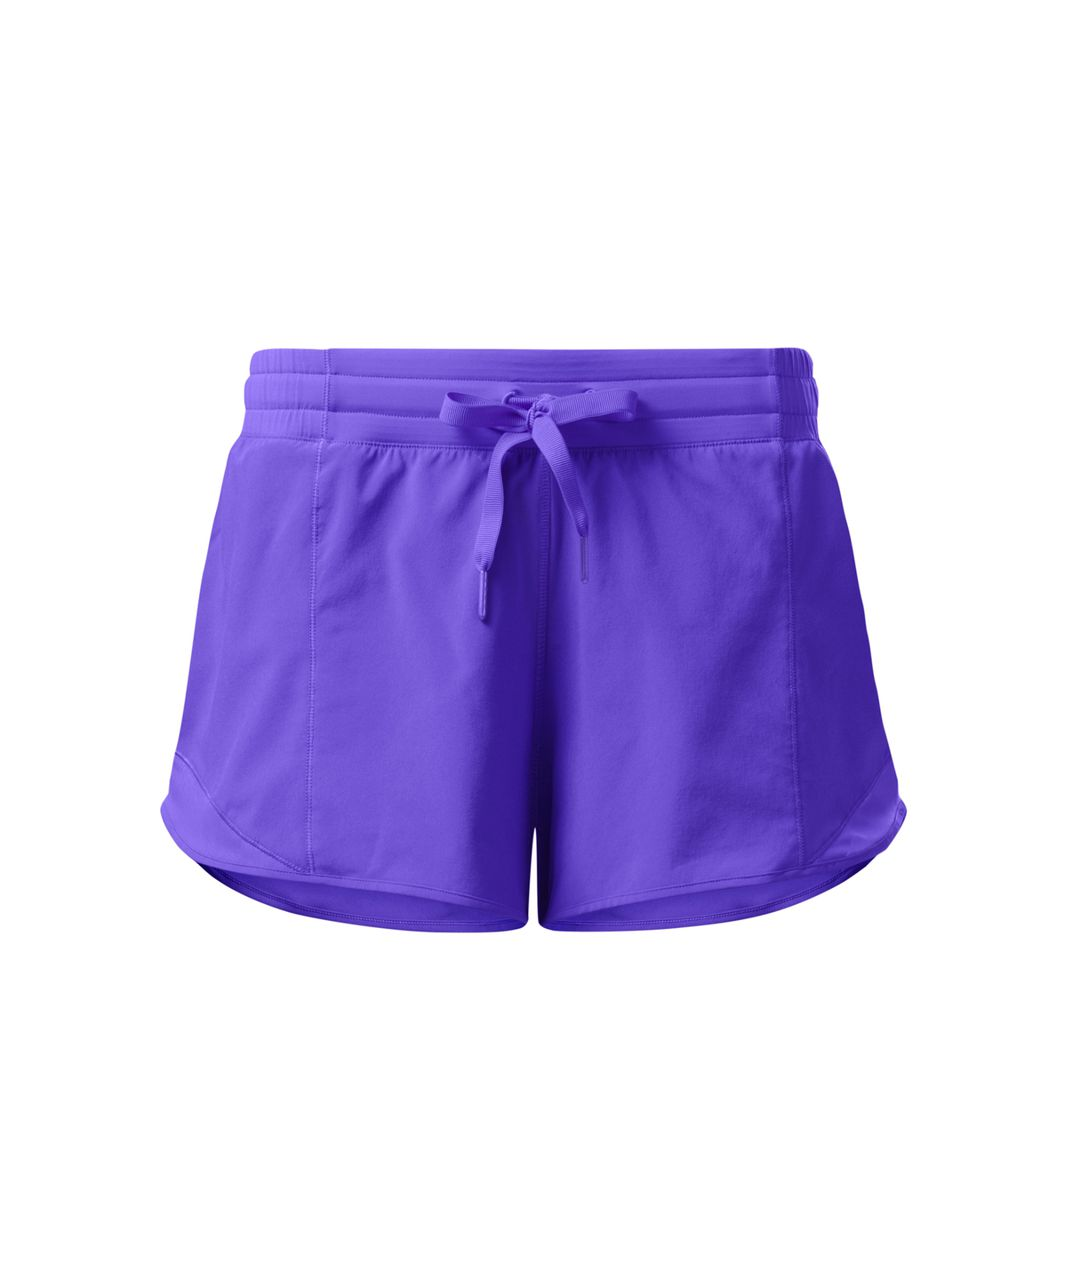 Lululemon Hotty Hot Short (Long) - Power Purple